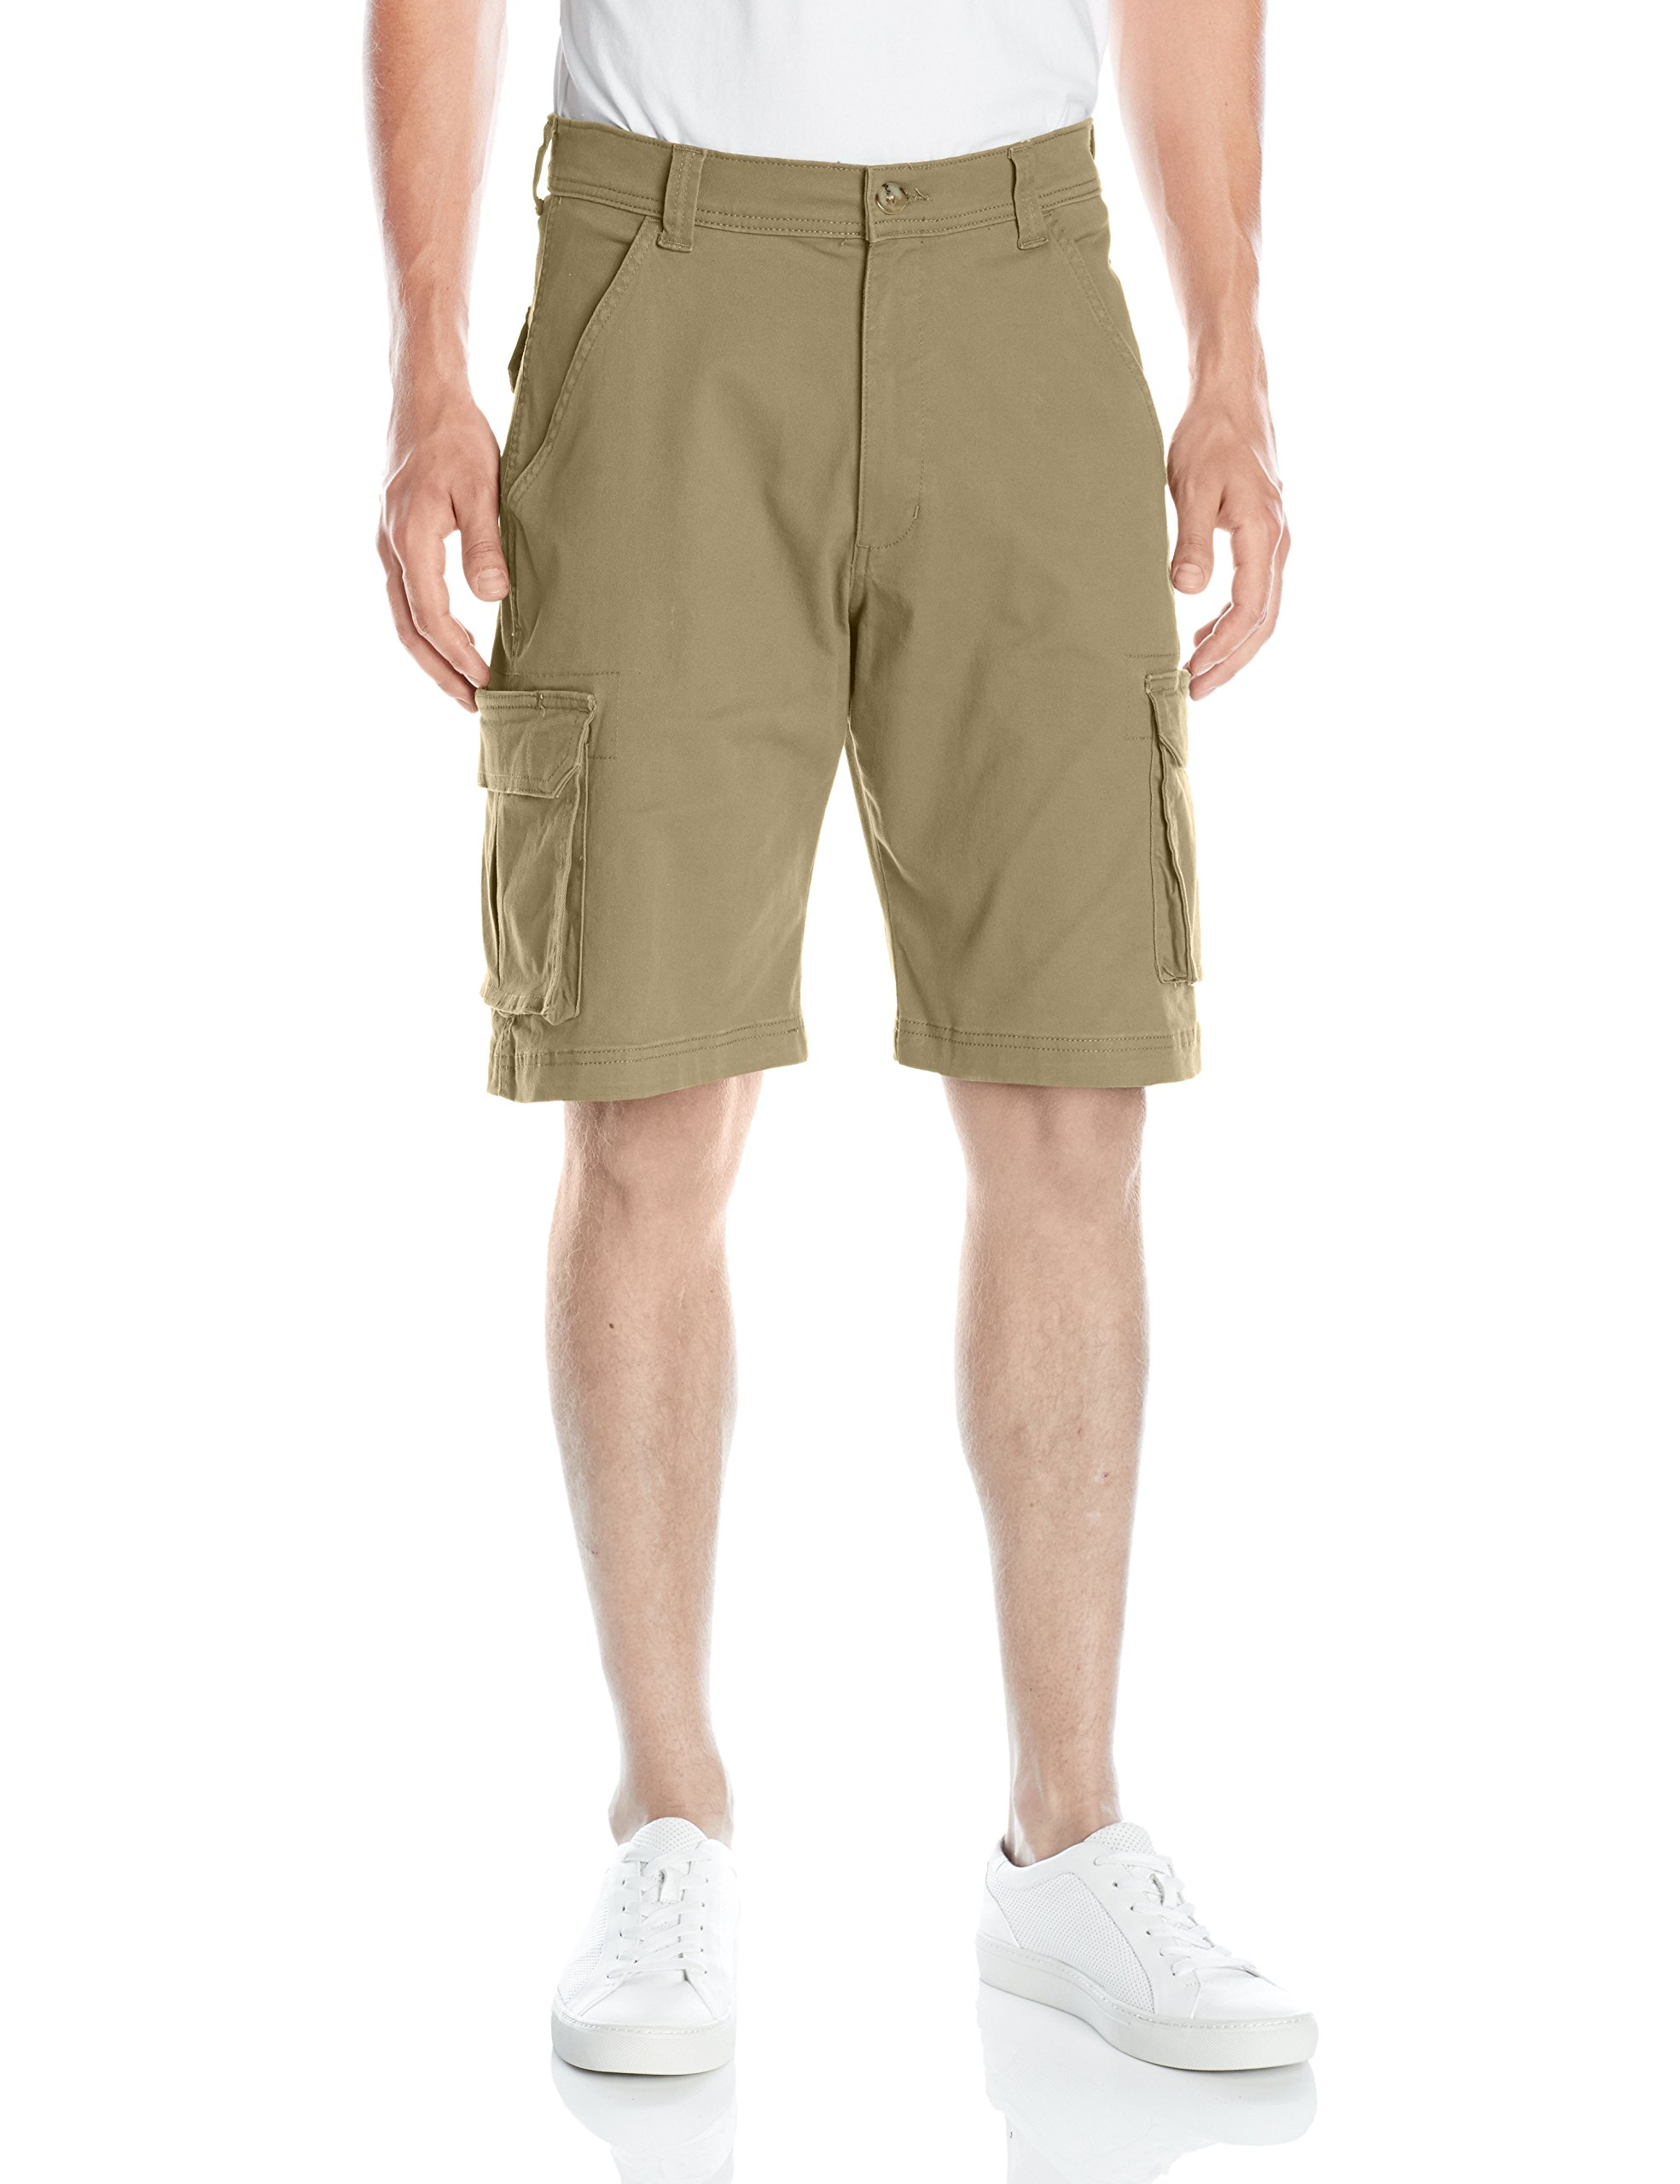 Wrangler Men's Genuine Tampa Cargo Short, Khaki, 36